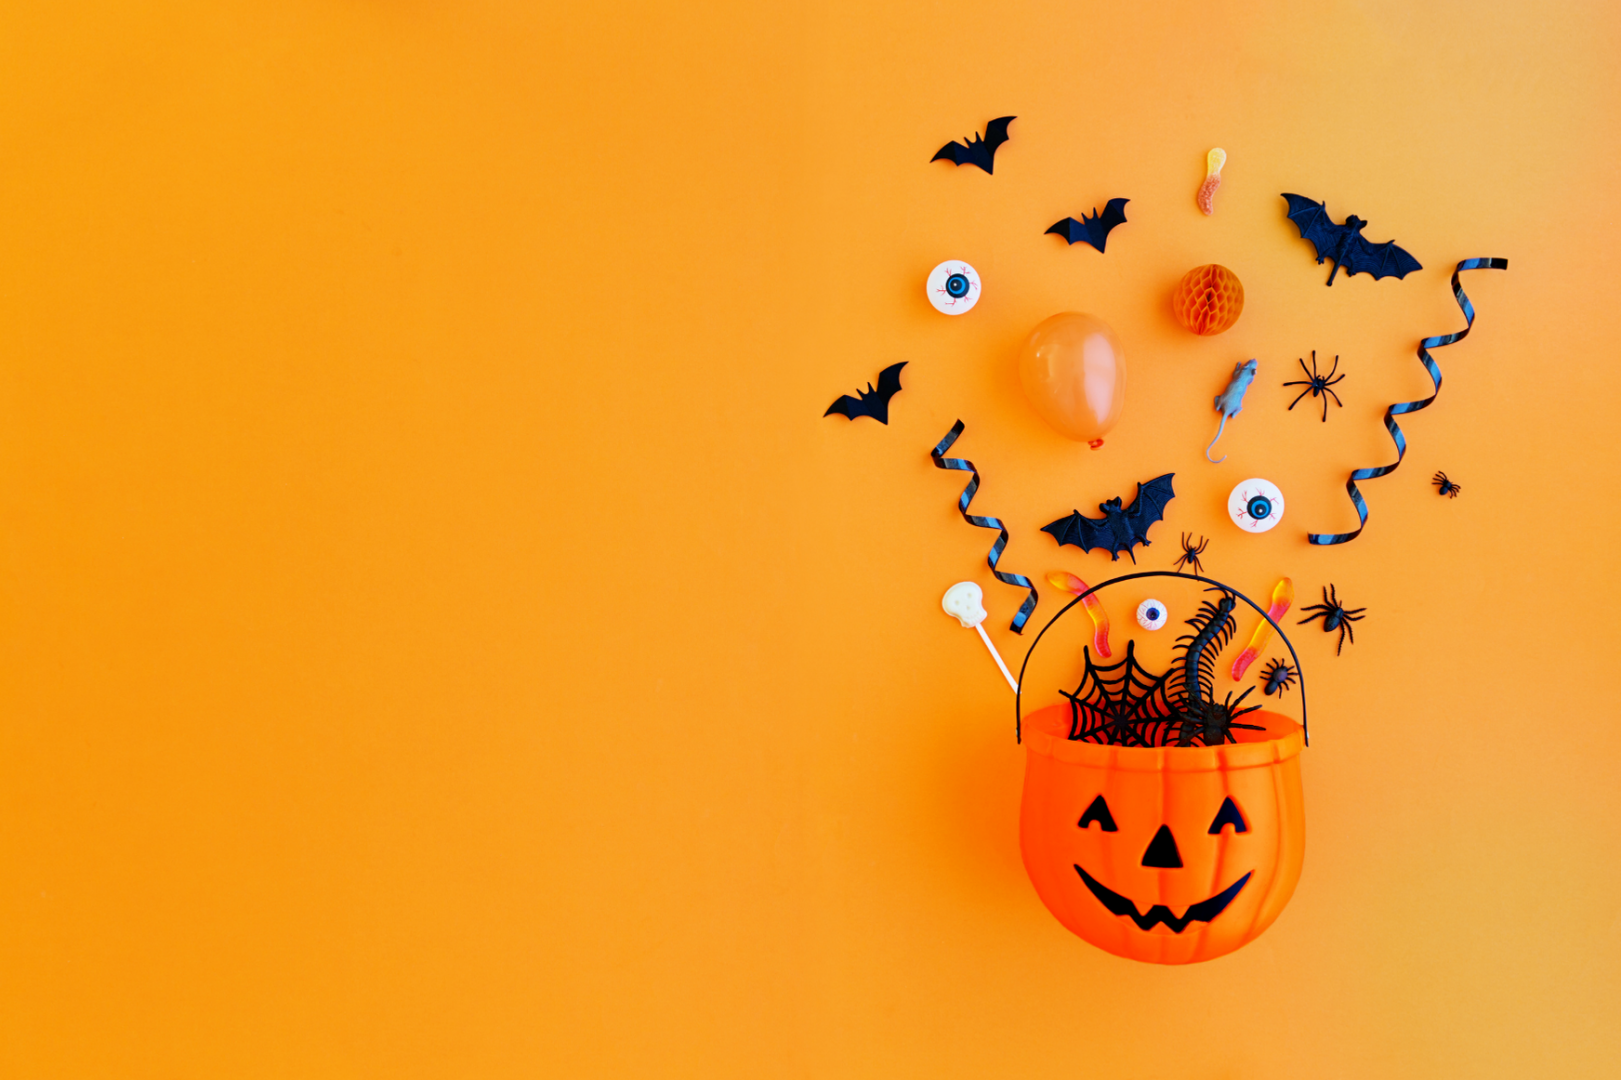 Home Decor per Halloween: 5 idee e trend dal web